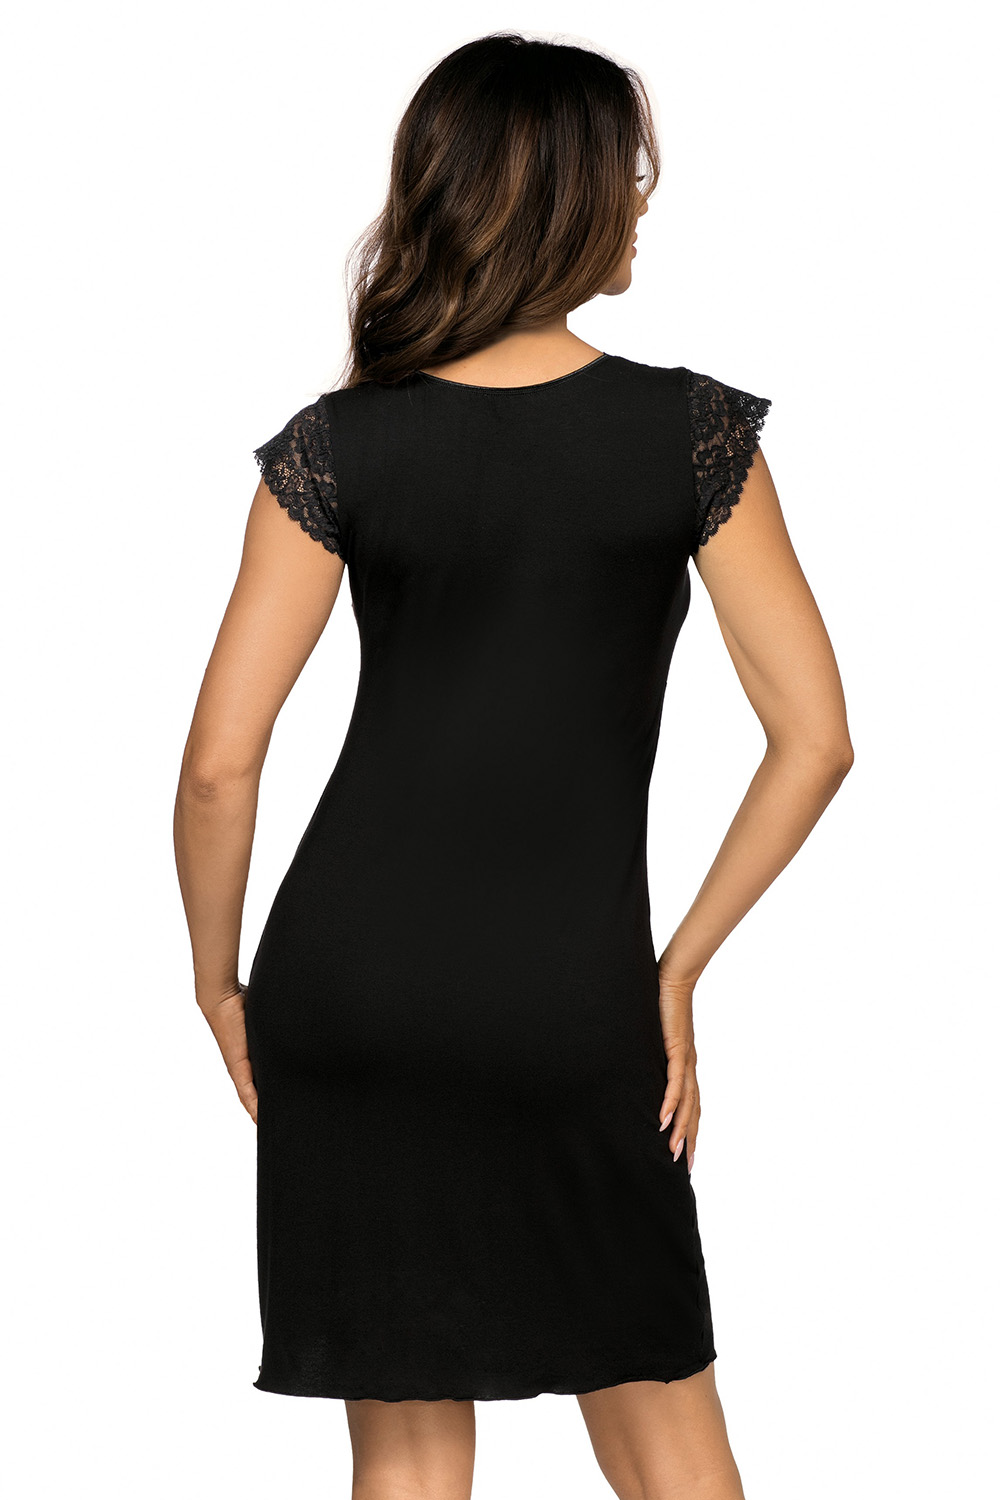 Eleni nightdress Black, don_eleni nightdress black, donna, Польша купить оптом на на Vishcopt.ru